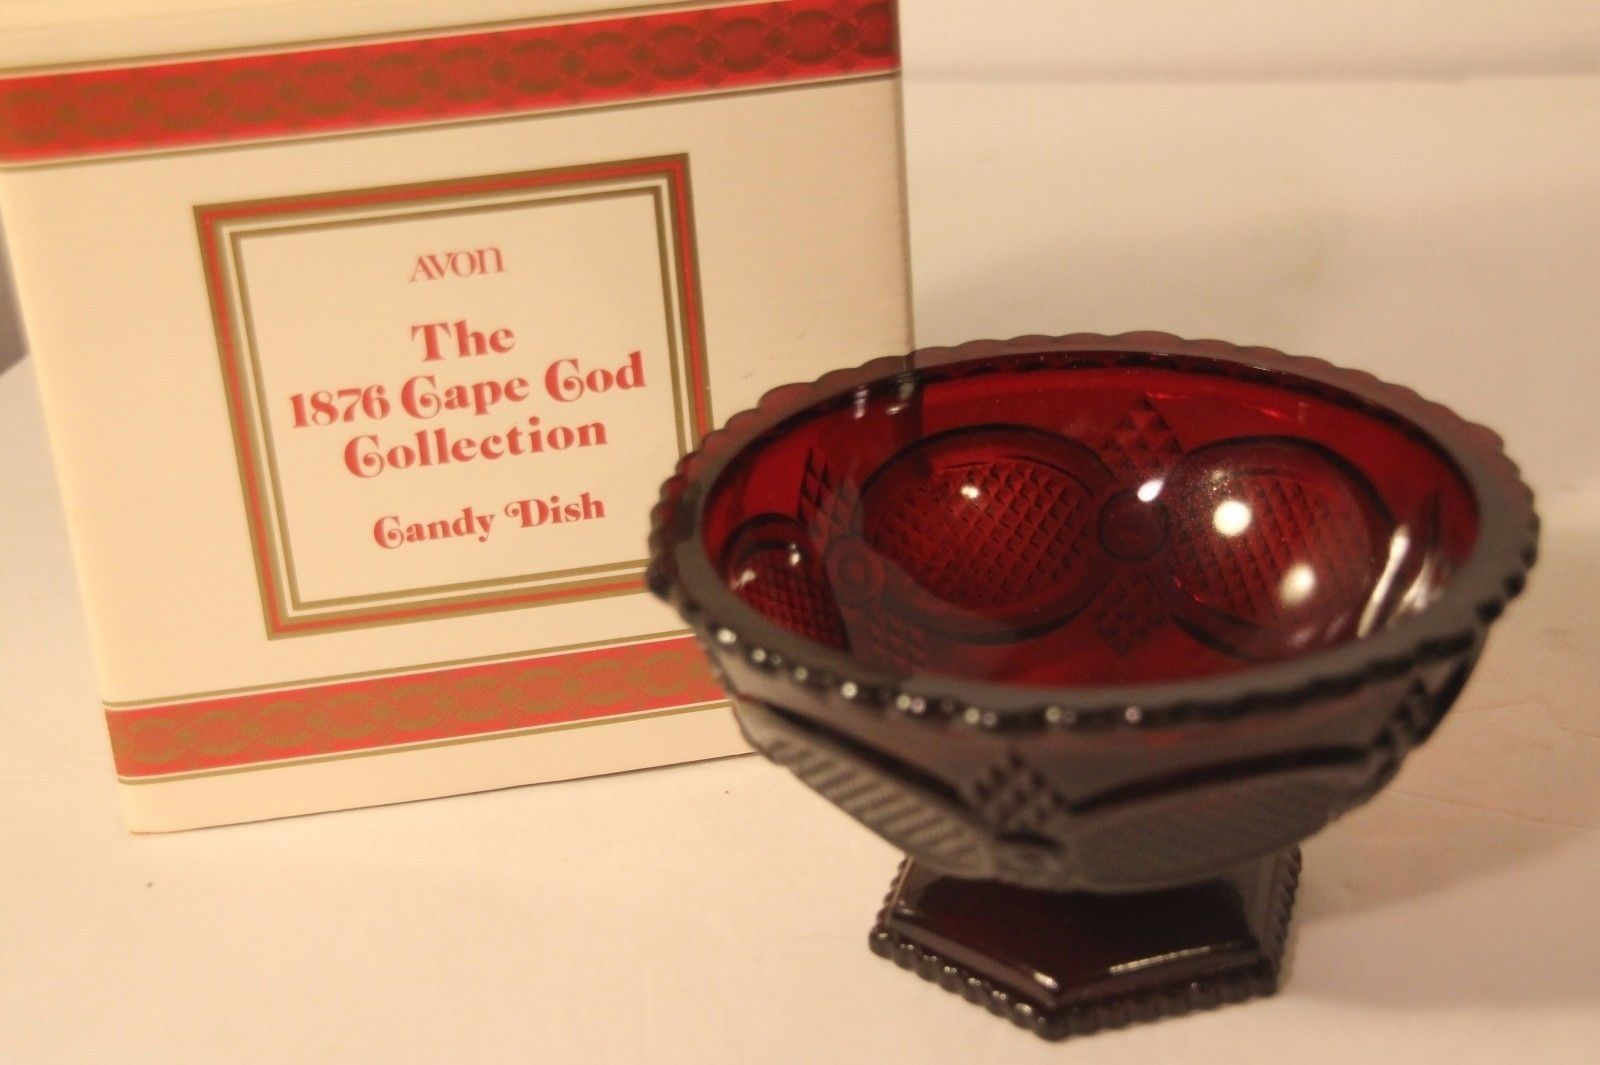 Avon Ruby Red 1876 Cape Cod Candy Dish + Original Box Vintage